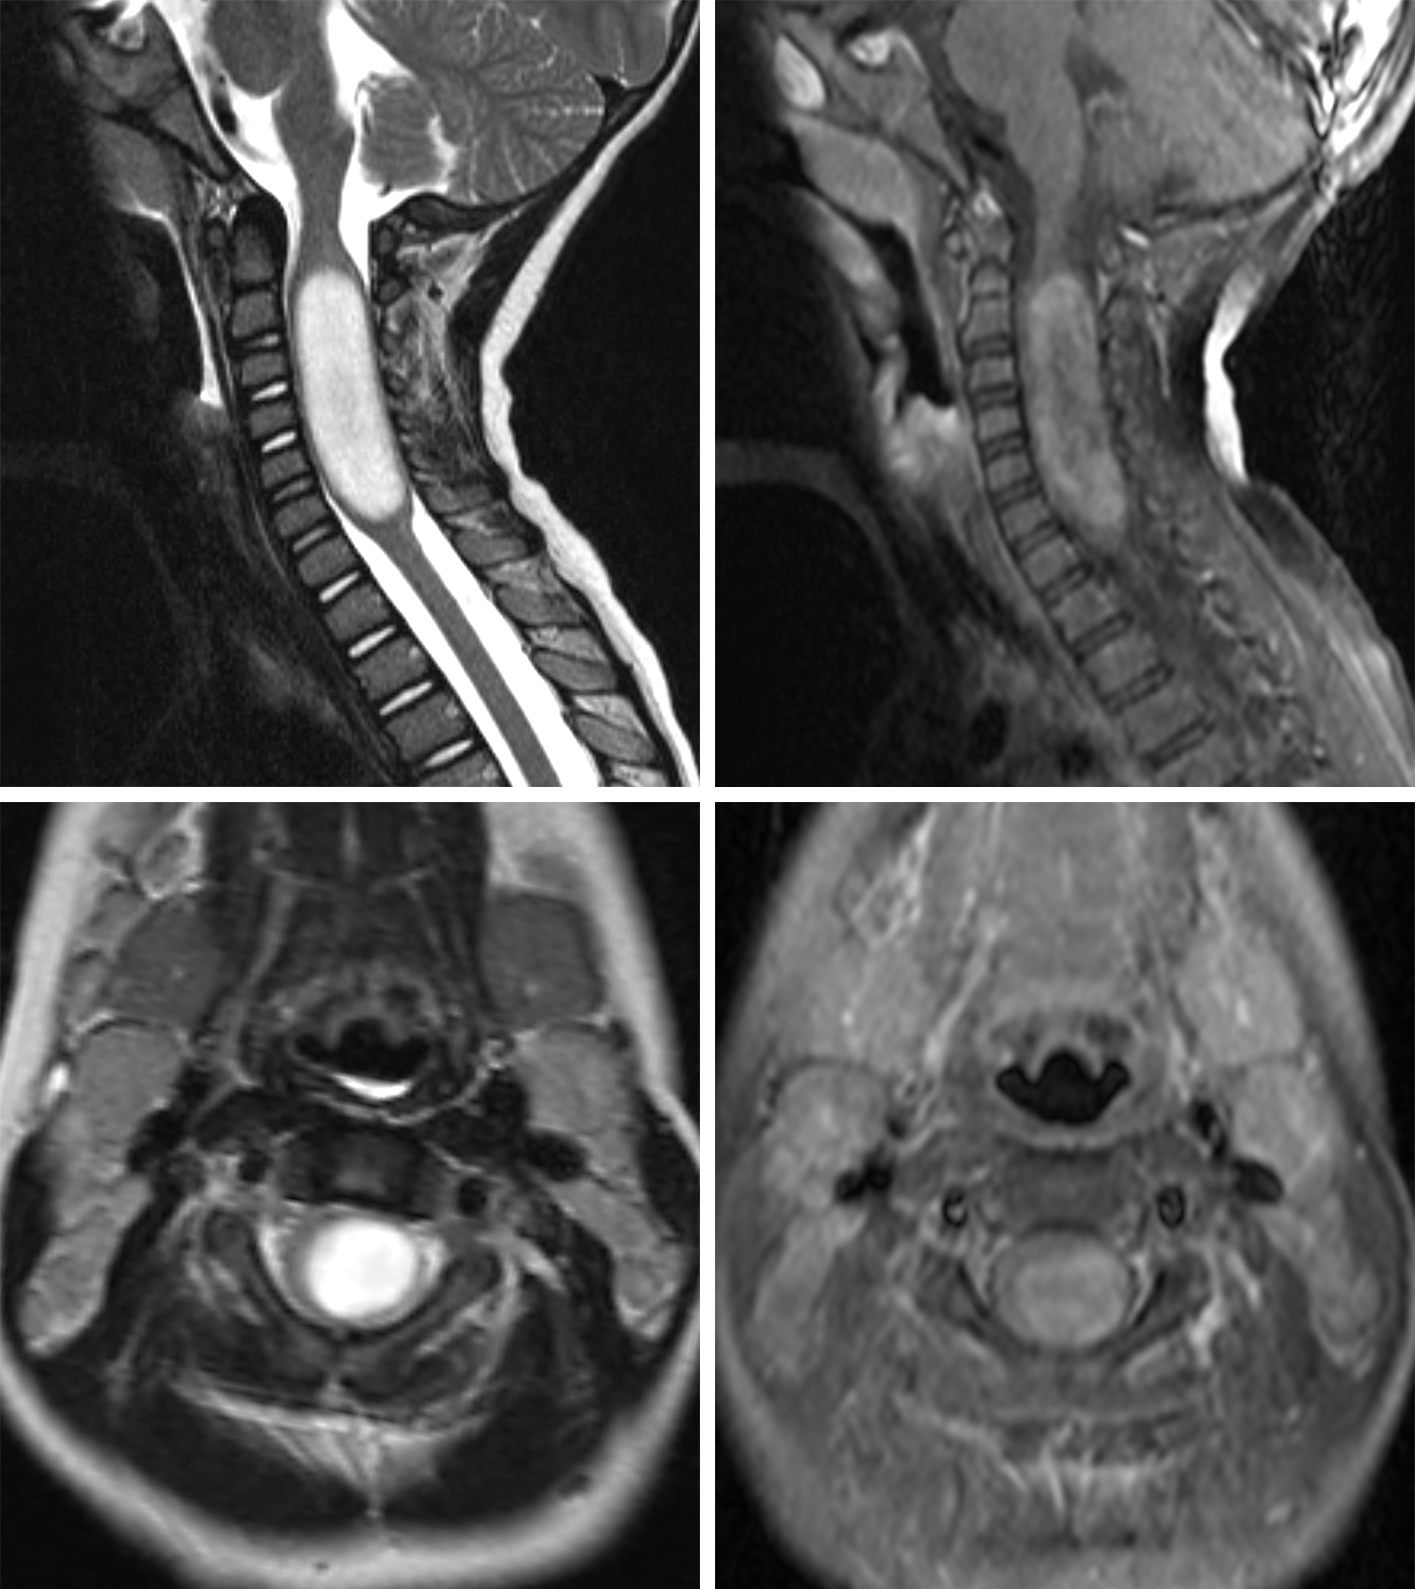 Figure 1: Sagittal and axial T2 (top row left and bottom row left) and sagittal and axial T1 post-contrast fat-saturated (FS) (top row right and bottom row right) images of the cervical spine demonstrate a slightly eccentric, T2 hyperintense mass with patchy enhancement expanding the cervical spinal cord in this pediatric patient who presented with paresthesia and weakness in the upper extremities. The imaging appearance, location, and clinical history favor astrocytoma although other intramedullary neoplasms could be included in the differential diagnosis.